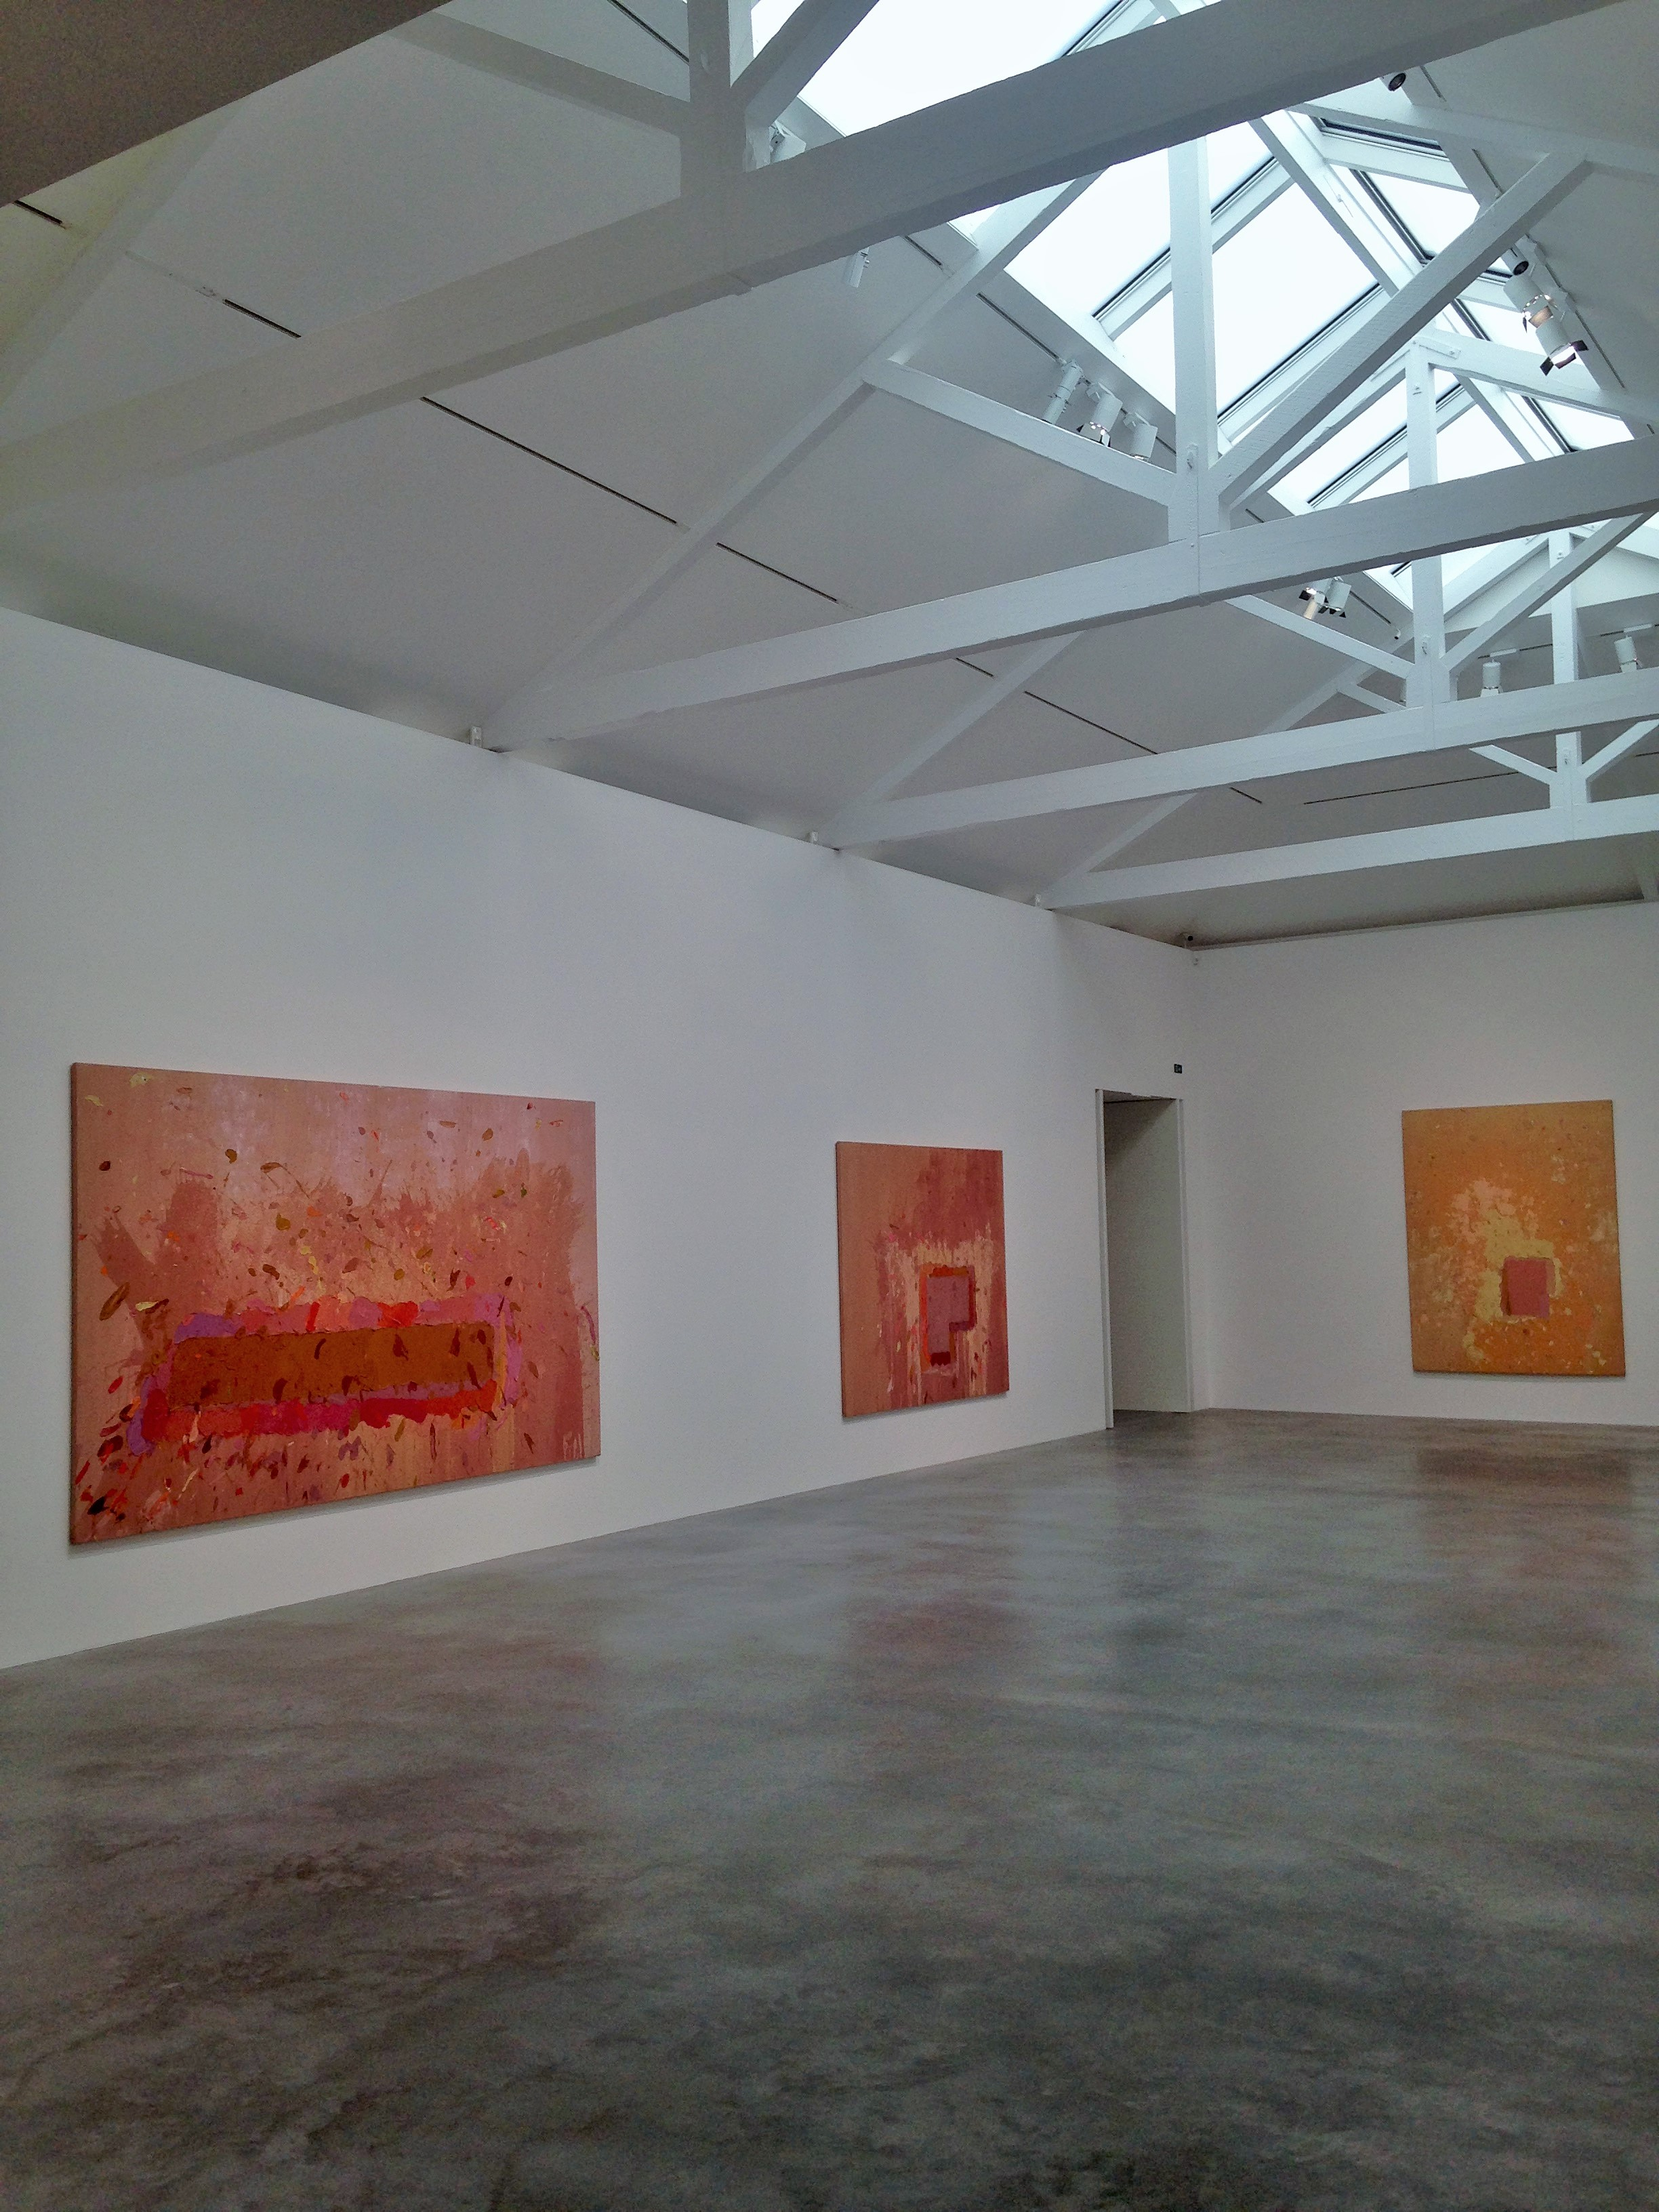 John Hoyland's Power Stations at Newport Street Gallery under skylights - kenningtonrunoff.om